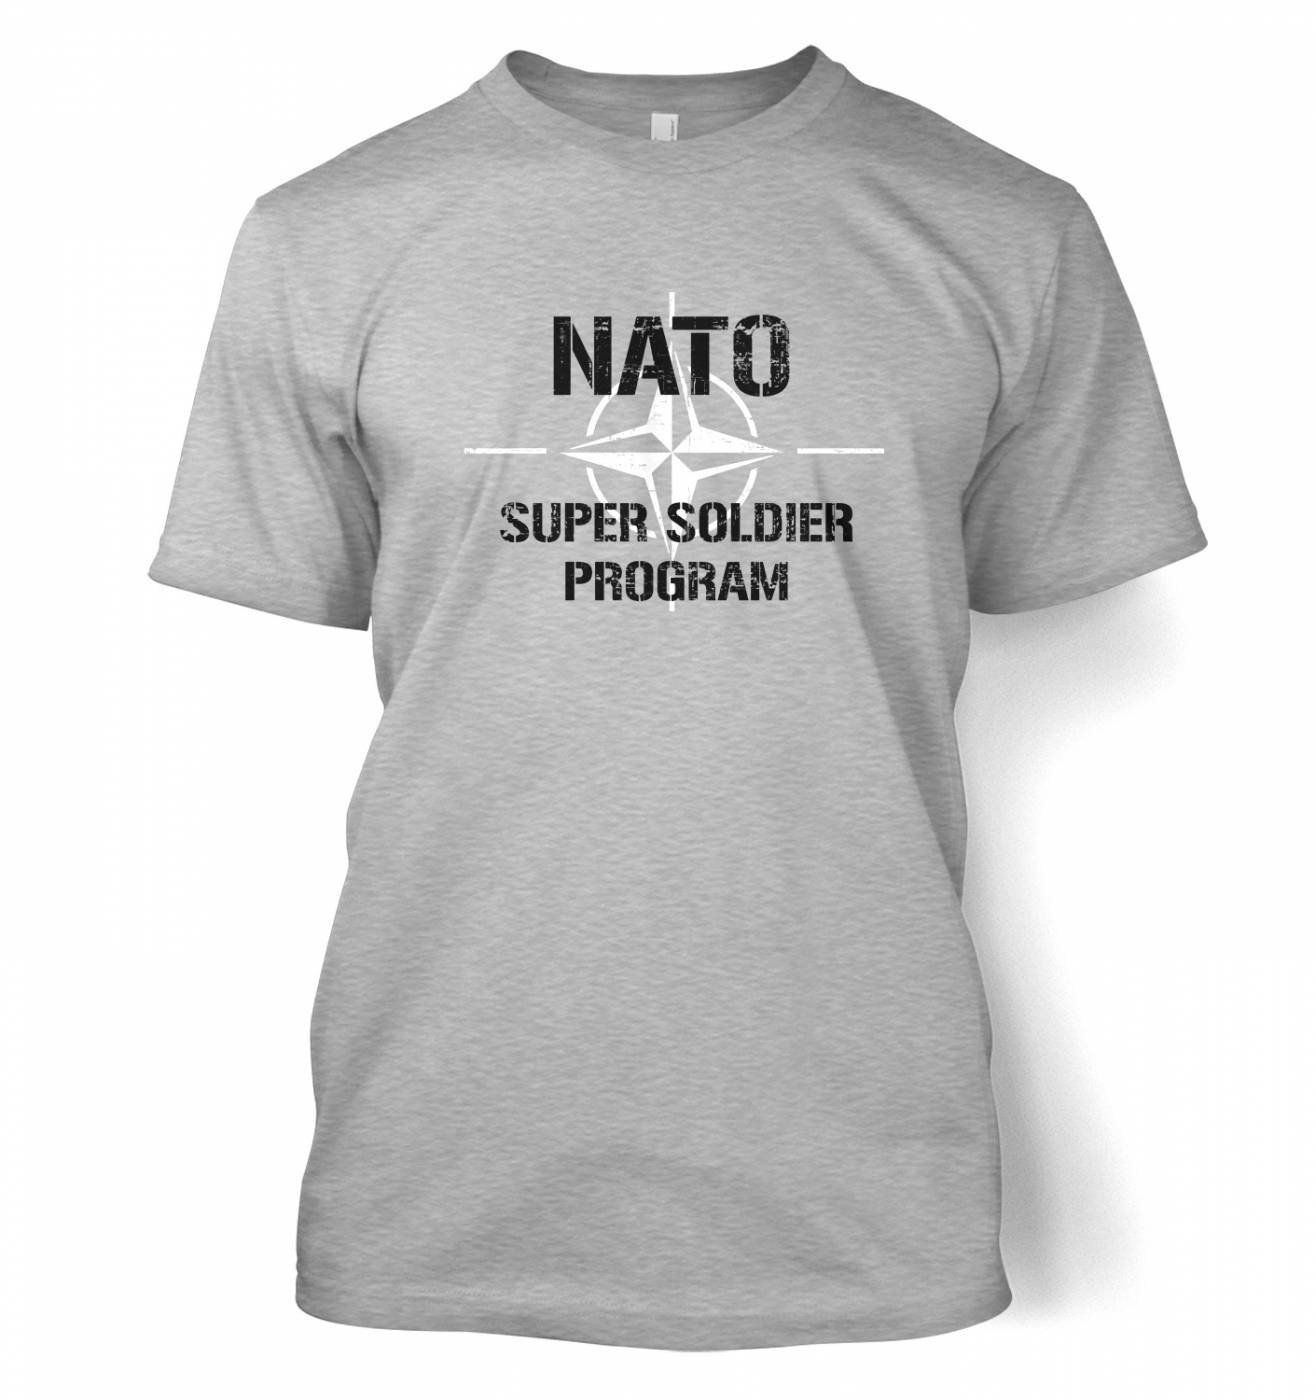 d5040185 Science Tshirts By Something Geeky Mens NATO Super Soldier Program T-shirt